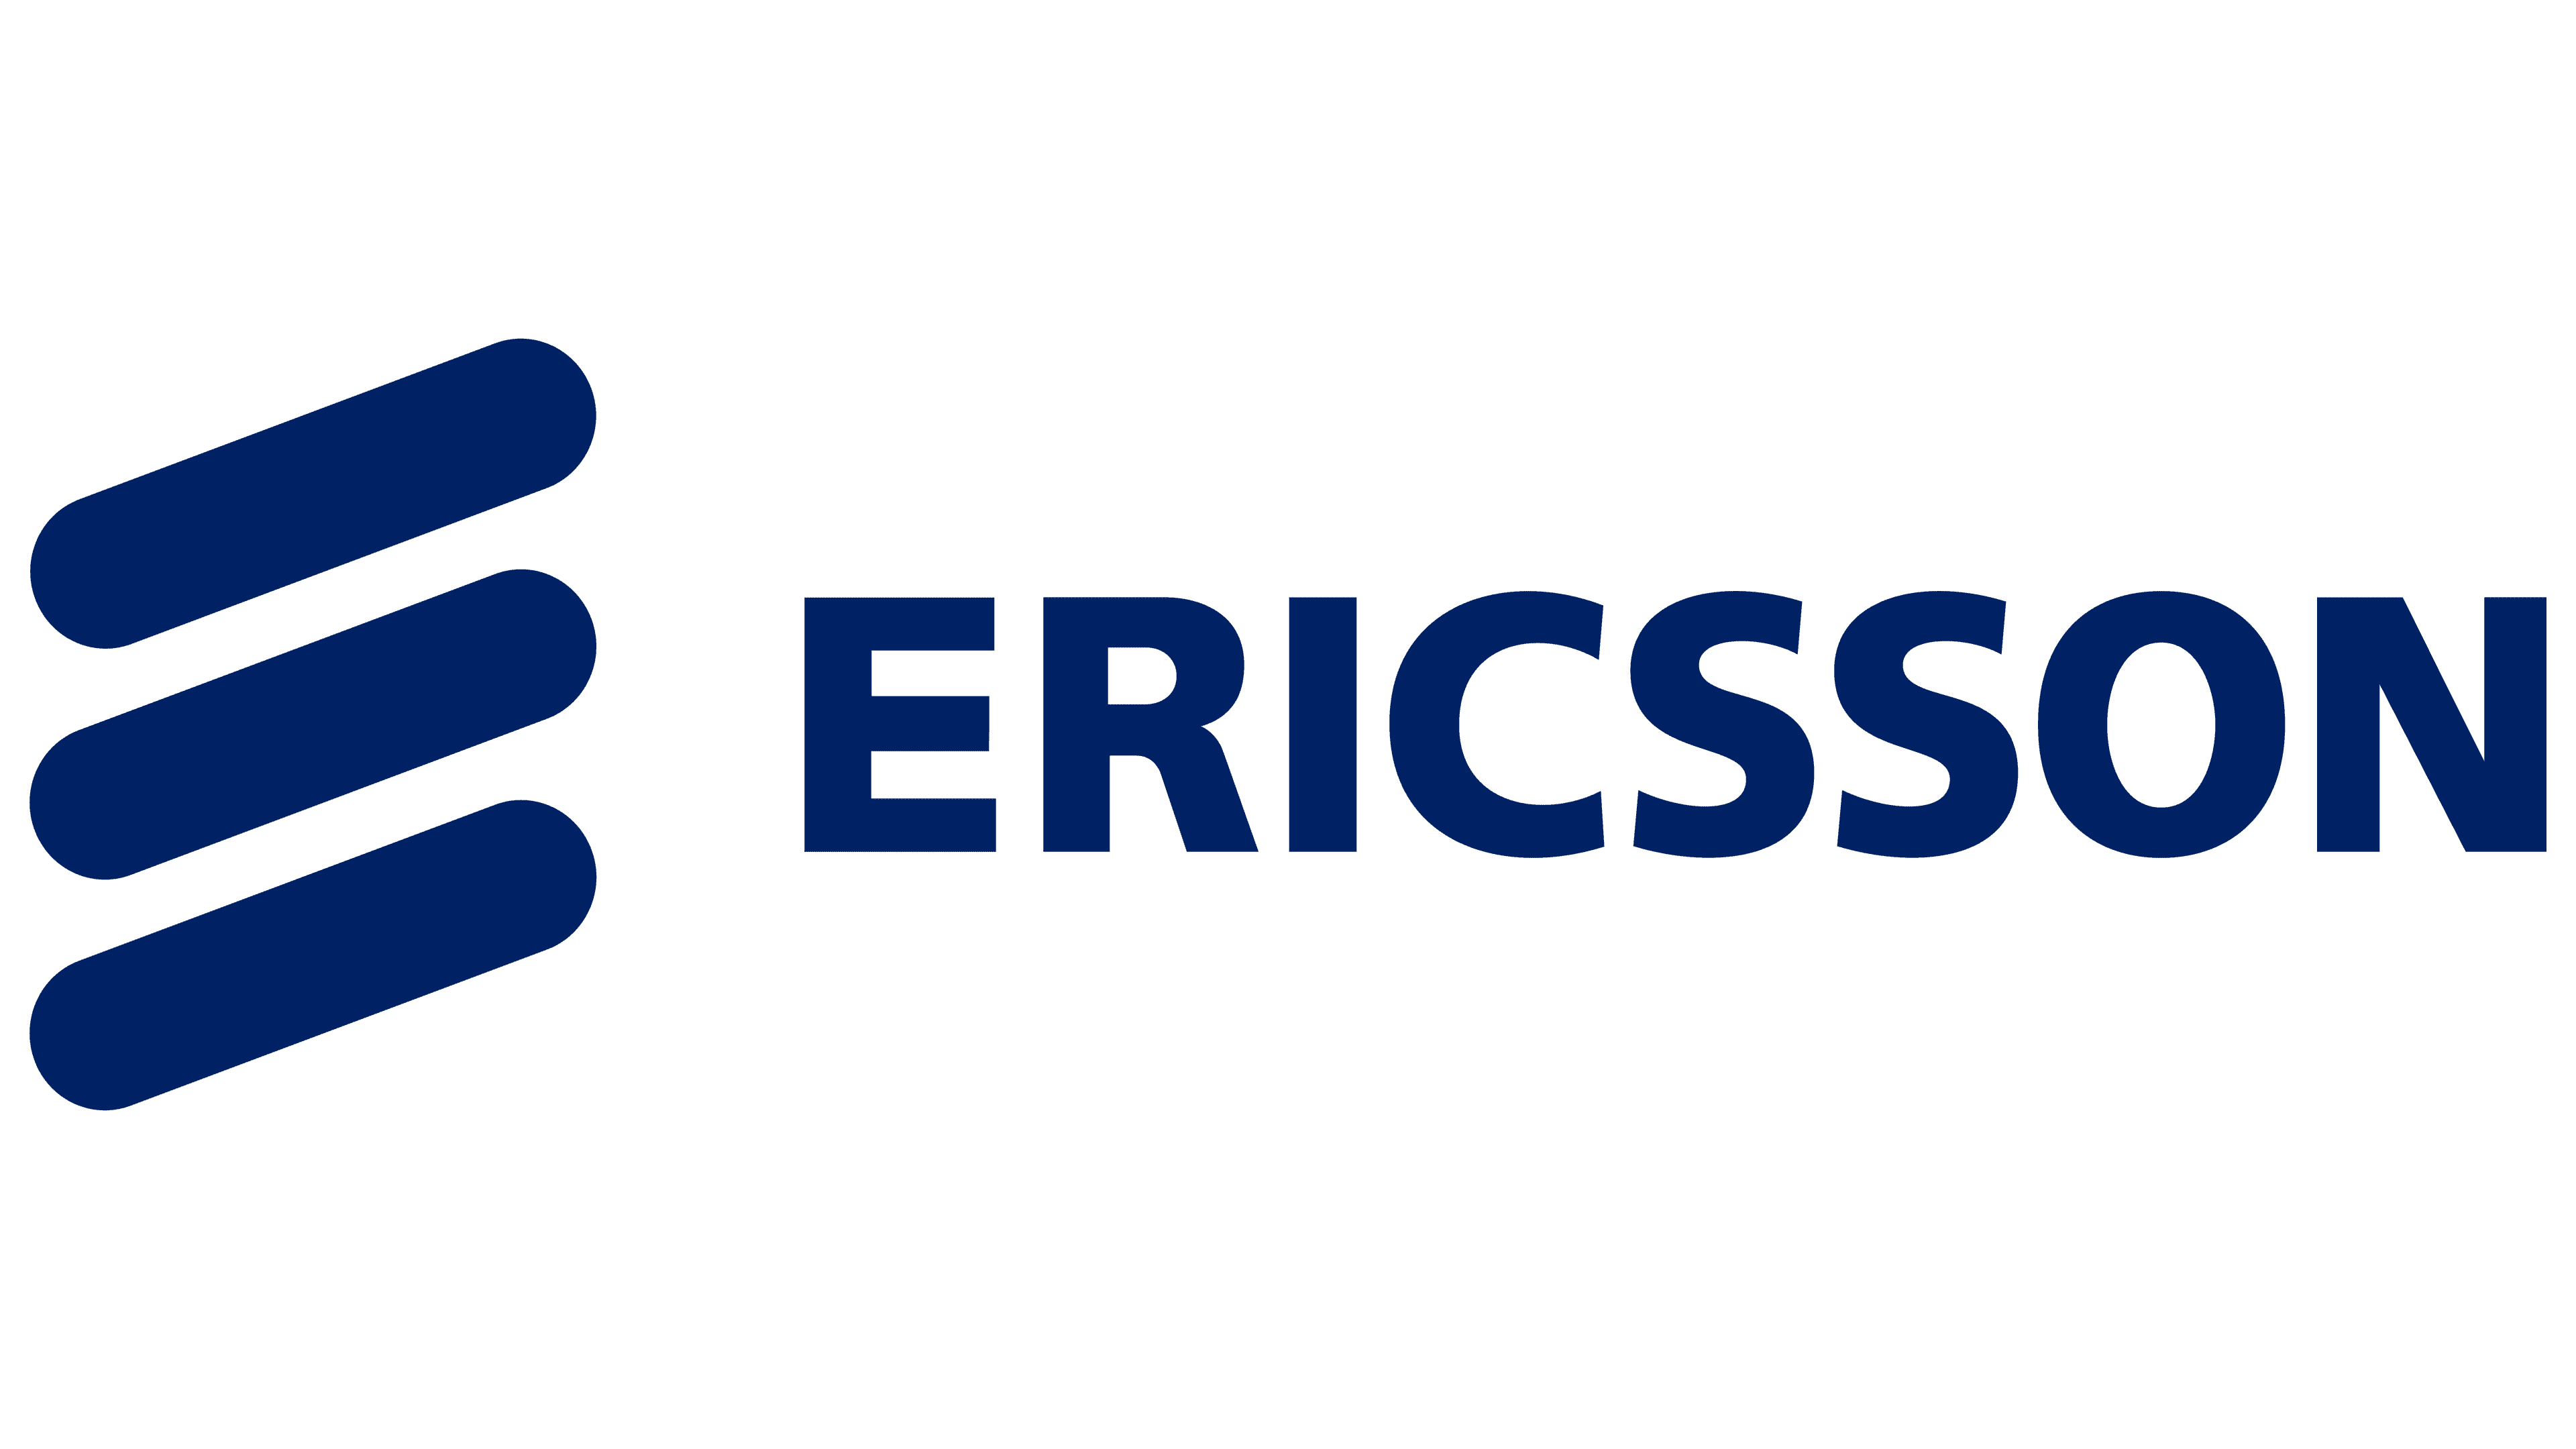 Ericsson Logo   evolution history and meaning, PNG